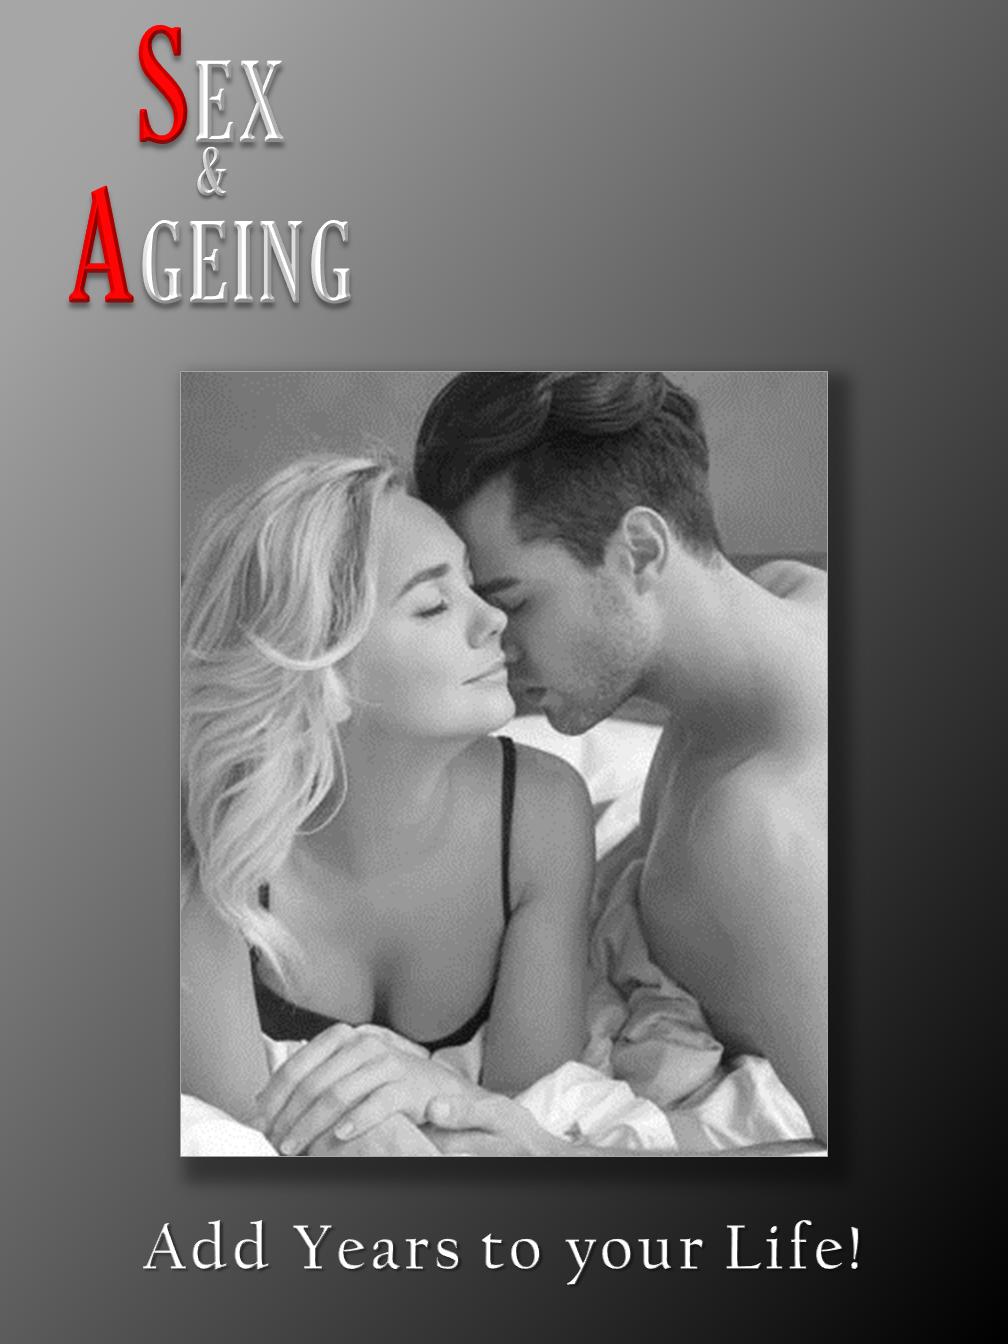 Sex & Ageing